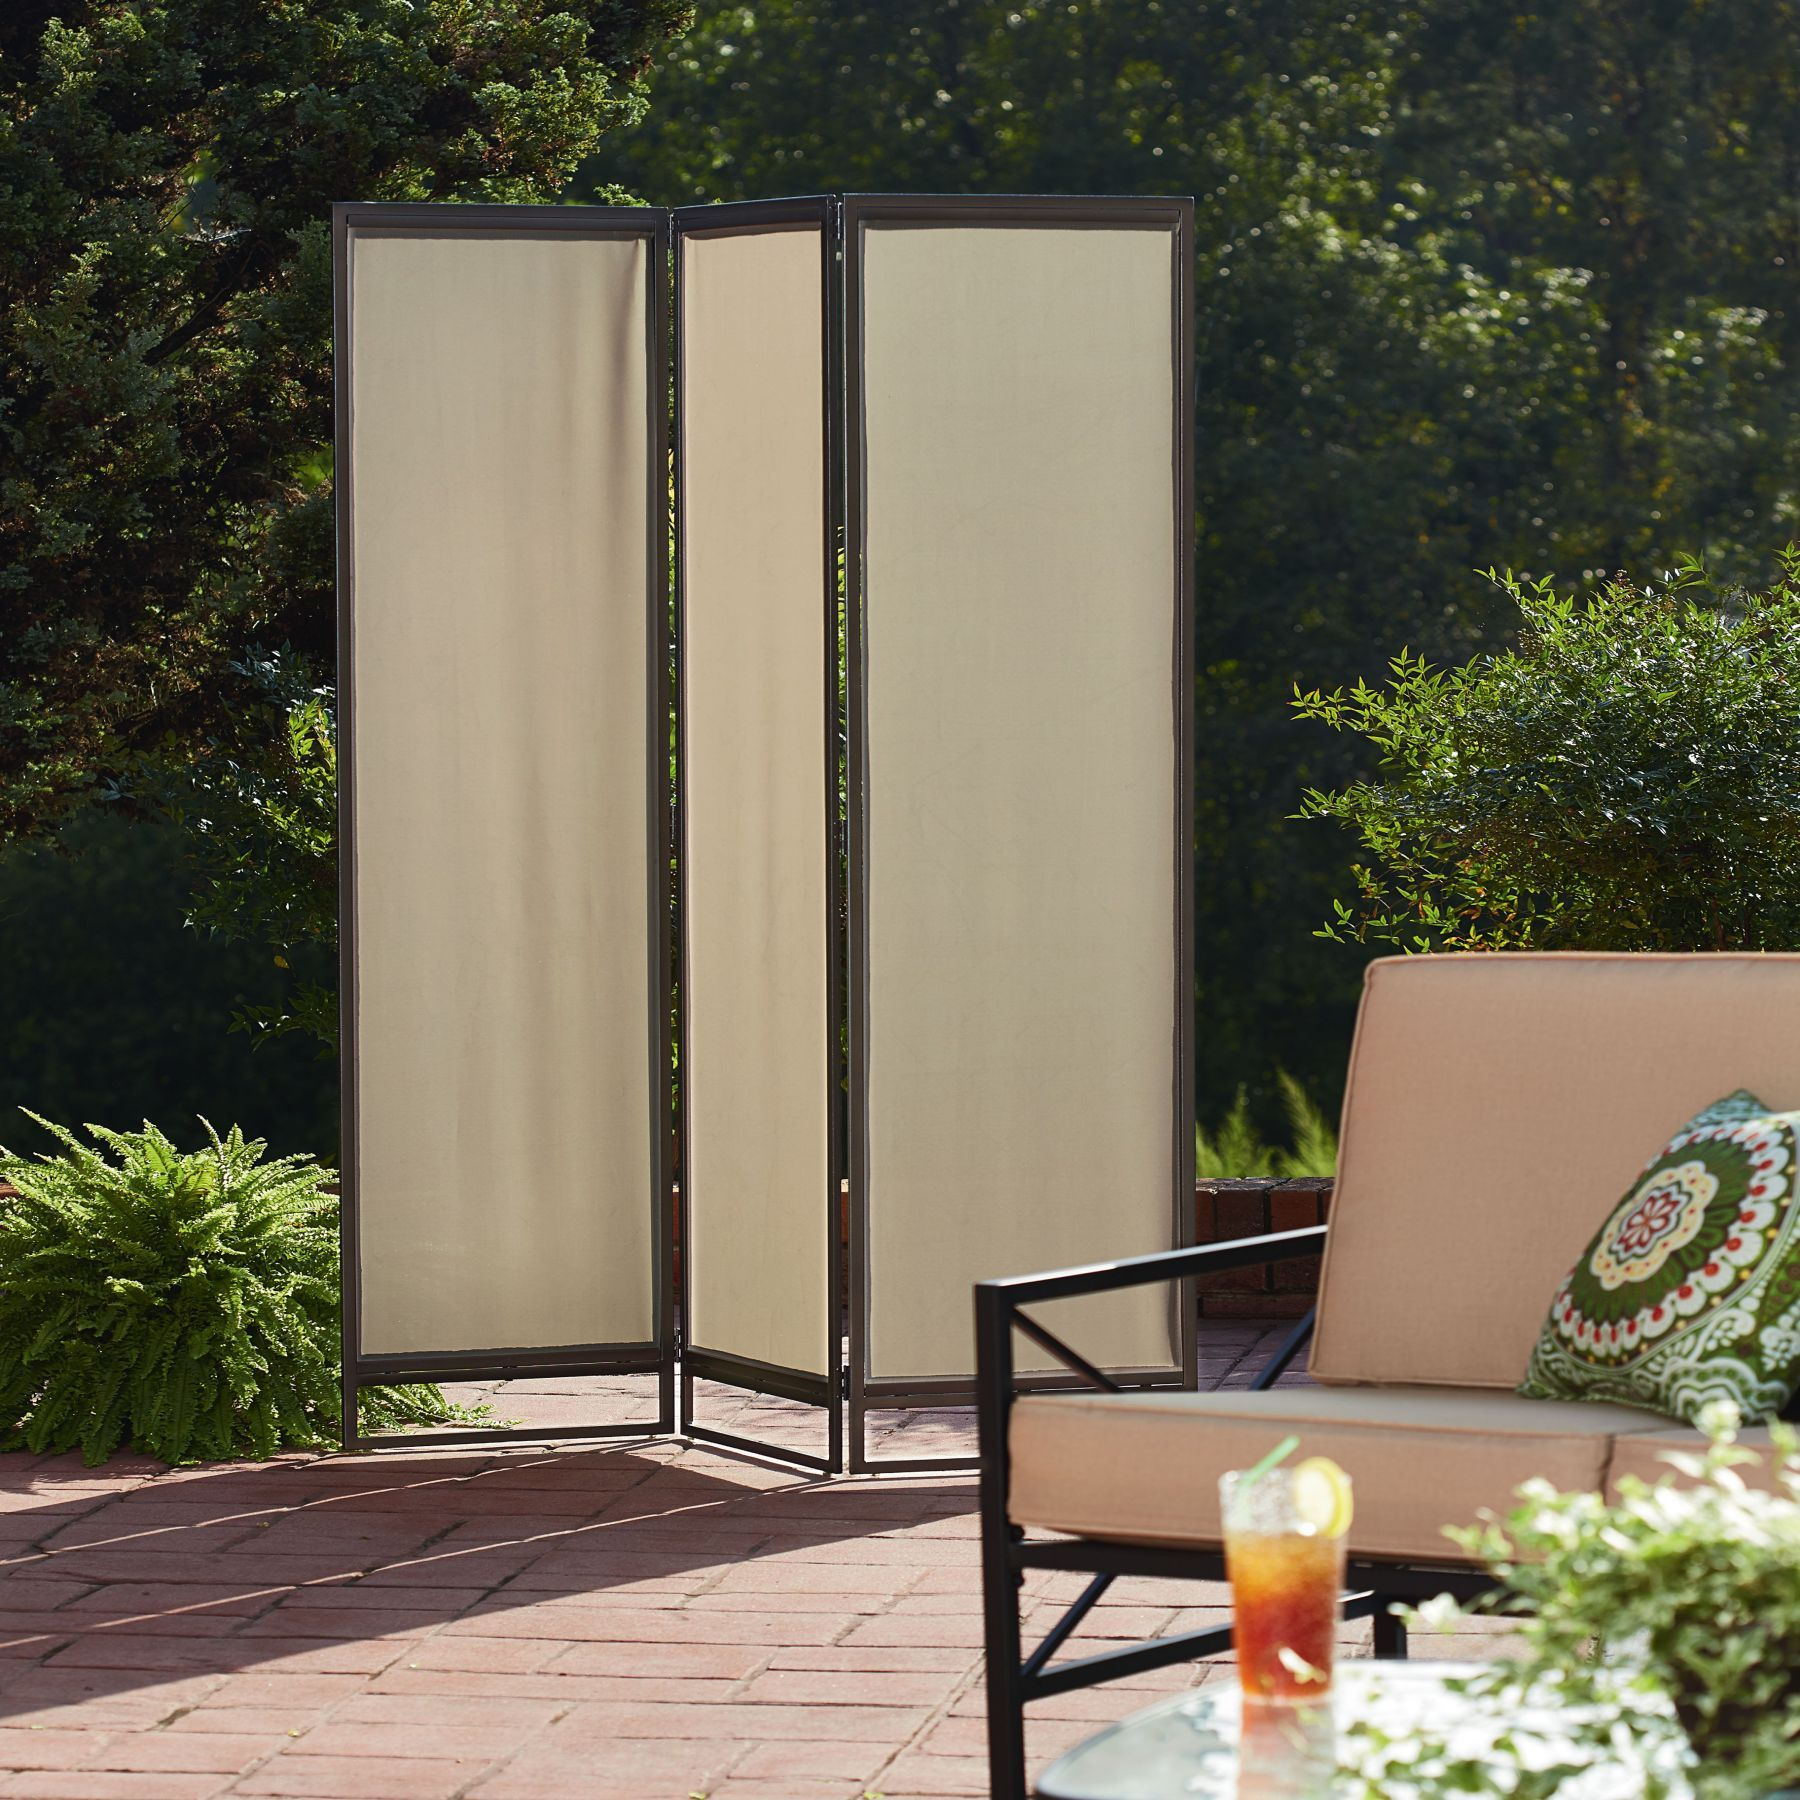 Good 10+ Best Outdoor Privacy Screen Ideas For Your Backyard